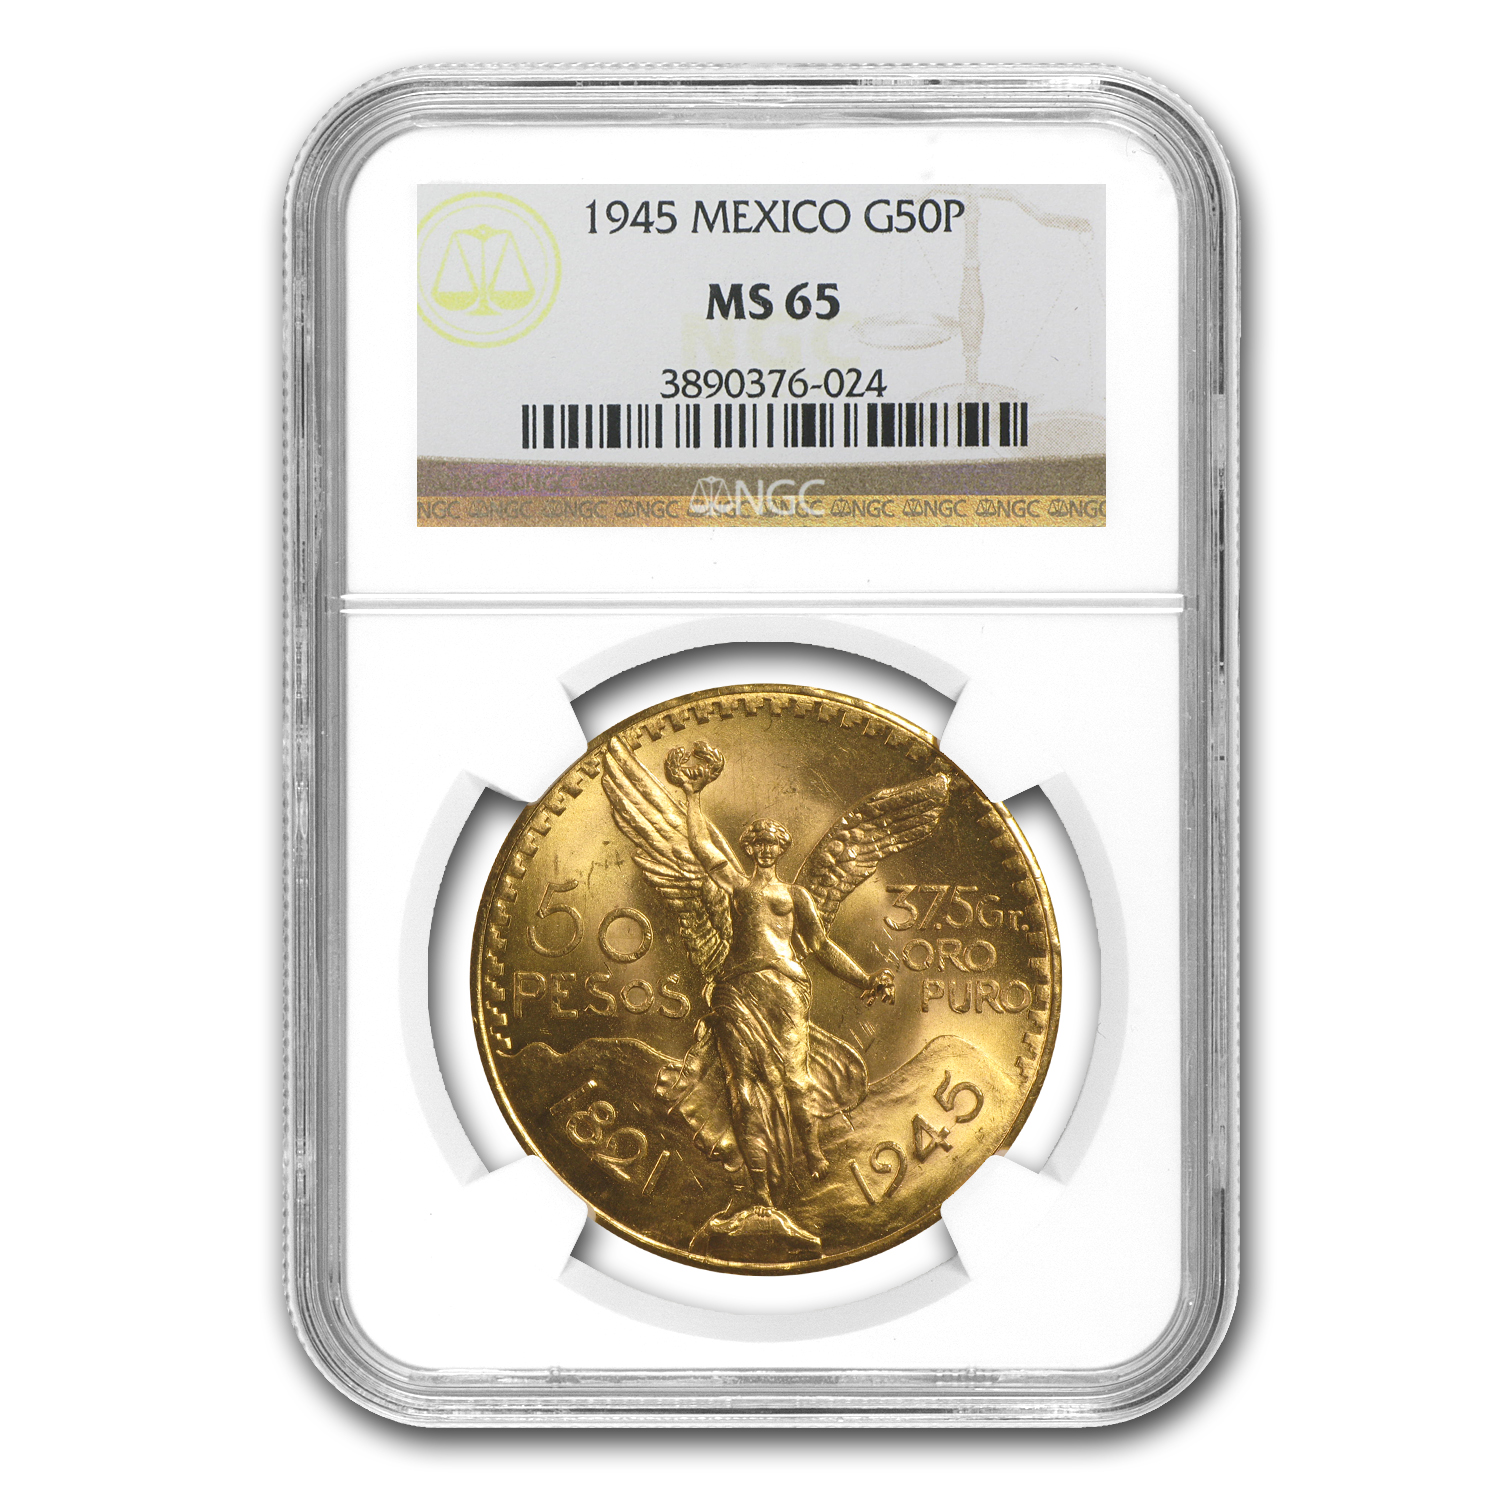 1945 Mexico Gold 50 Pesos MS-65 NGC